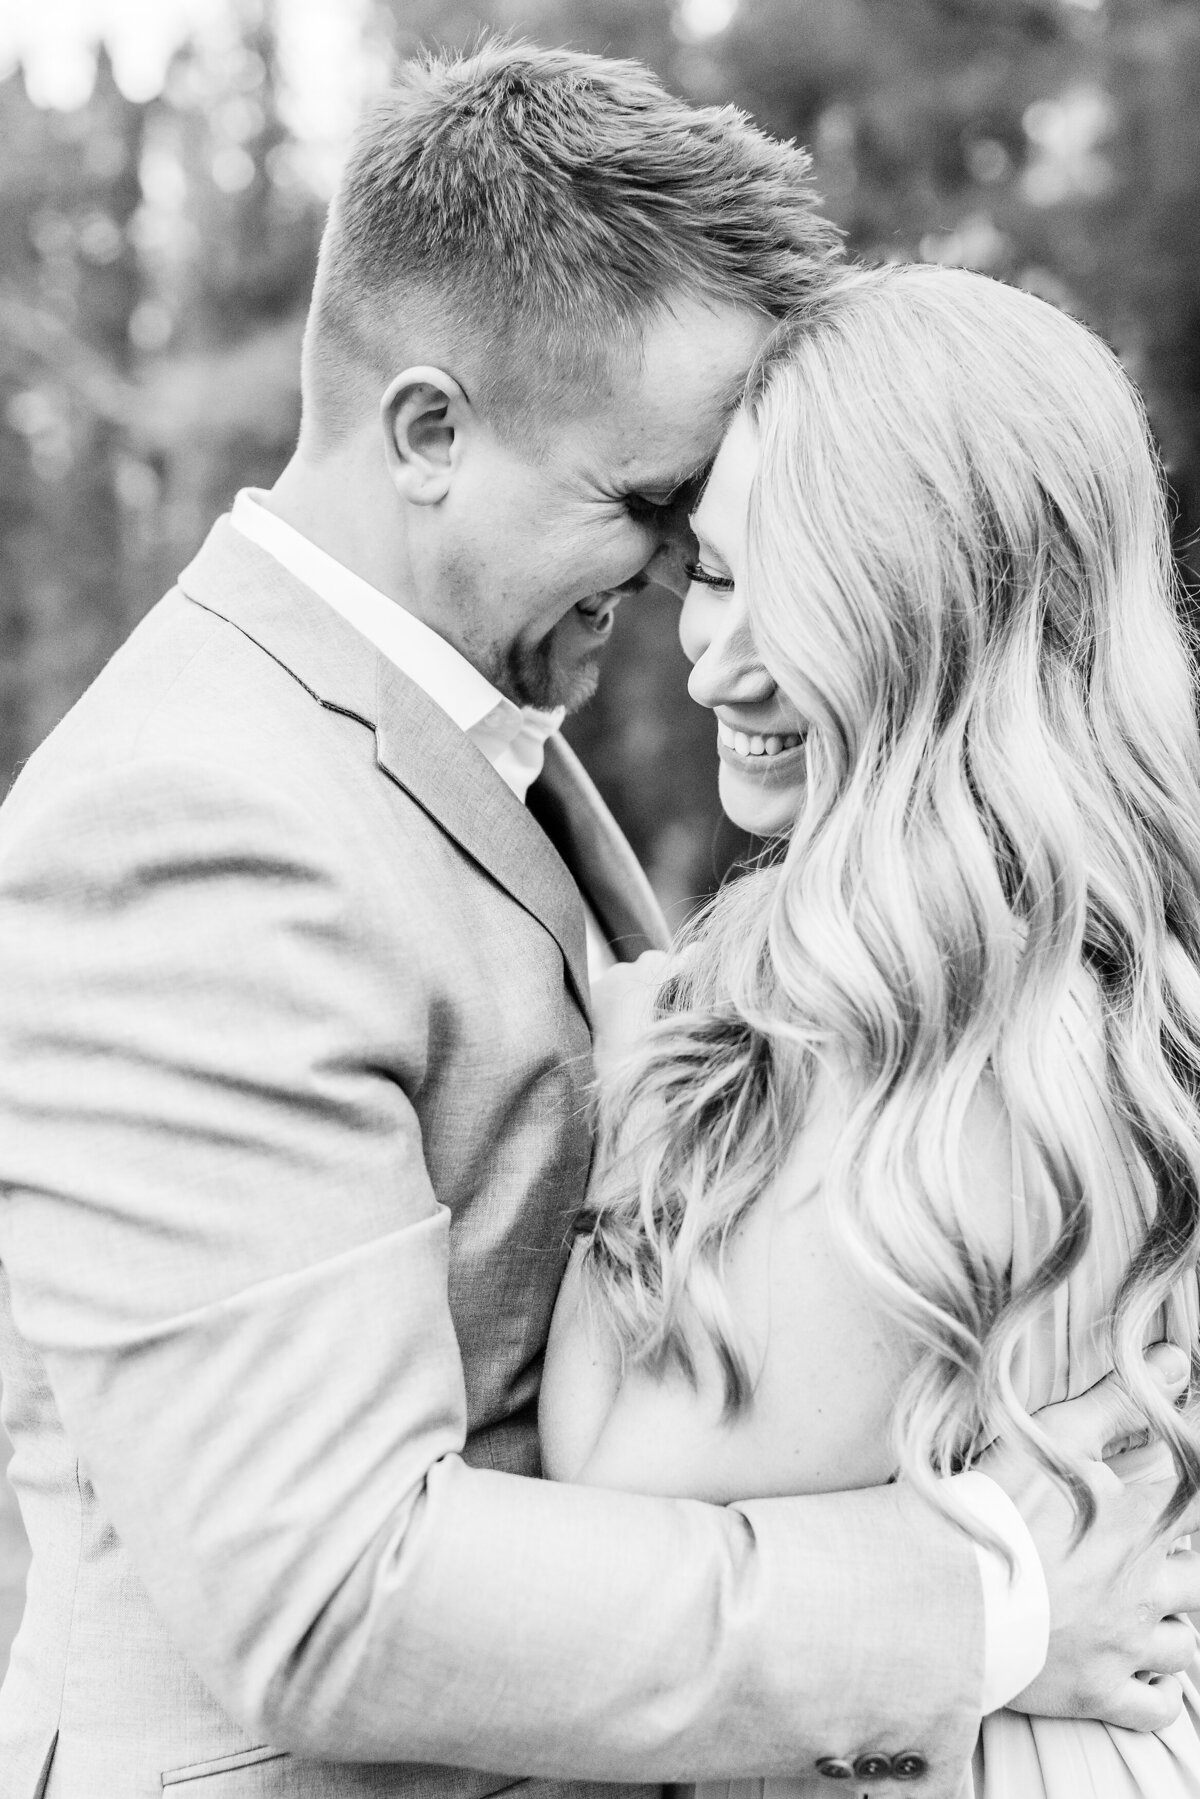 Couple-share-a-special-moment-laughing-as-his-forehead-is-on-her-temple-during-their-fall-engagement-session-at-Cranberry-Creek-Gardens